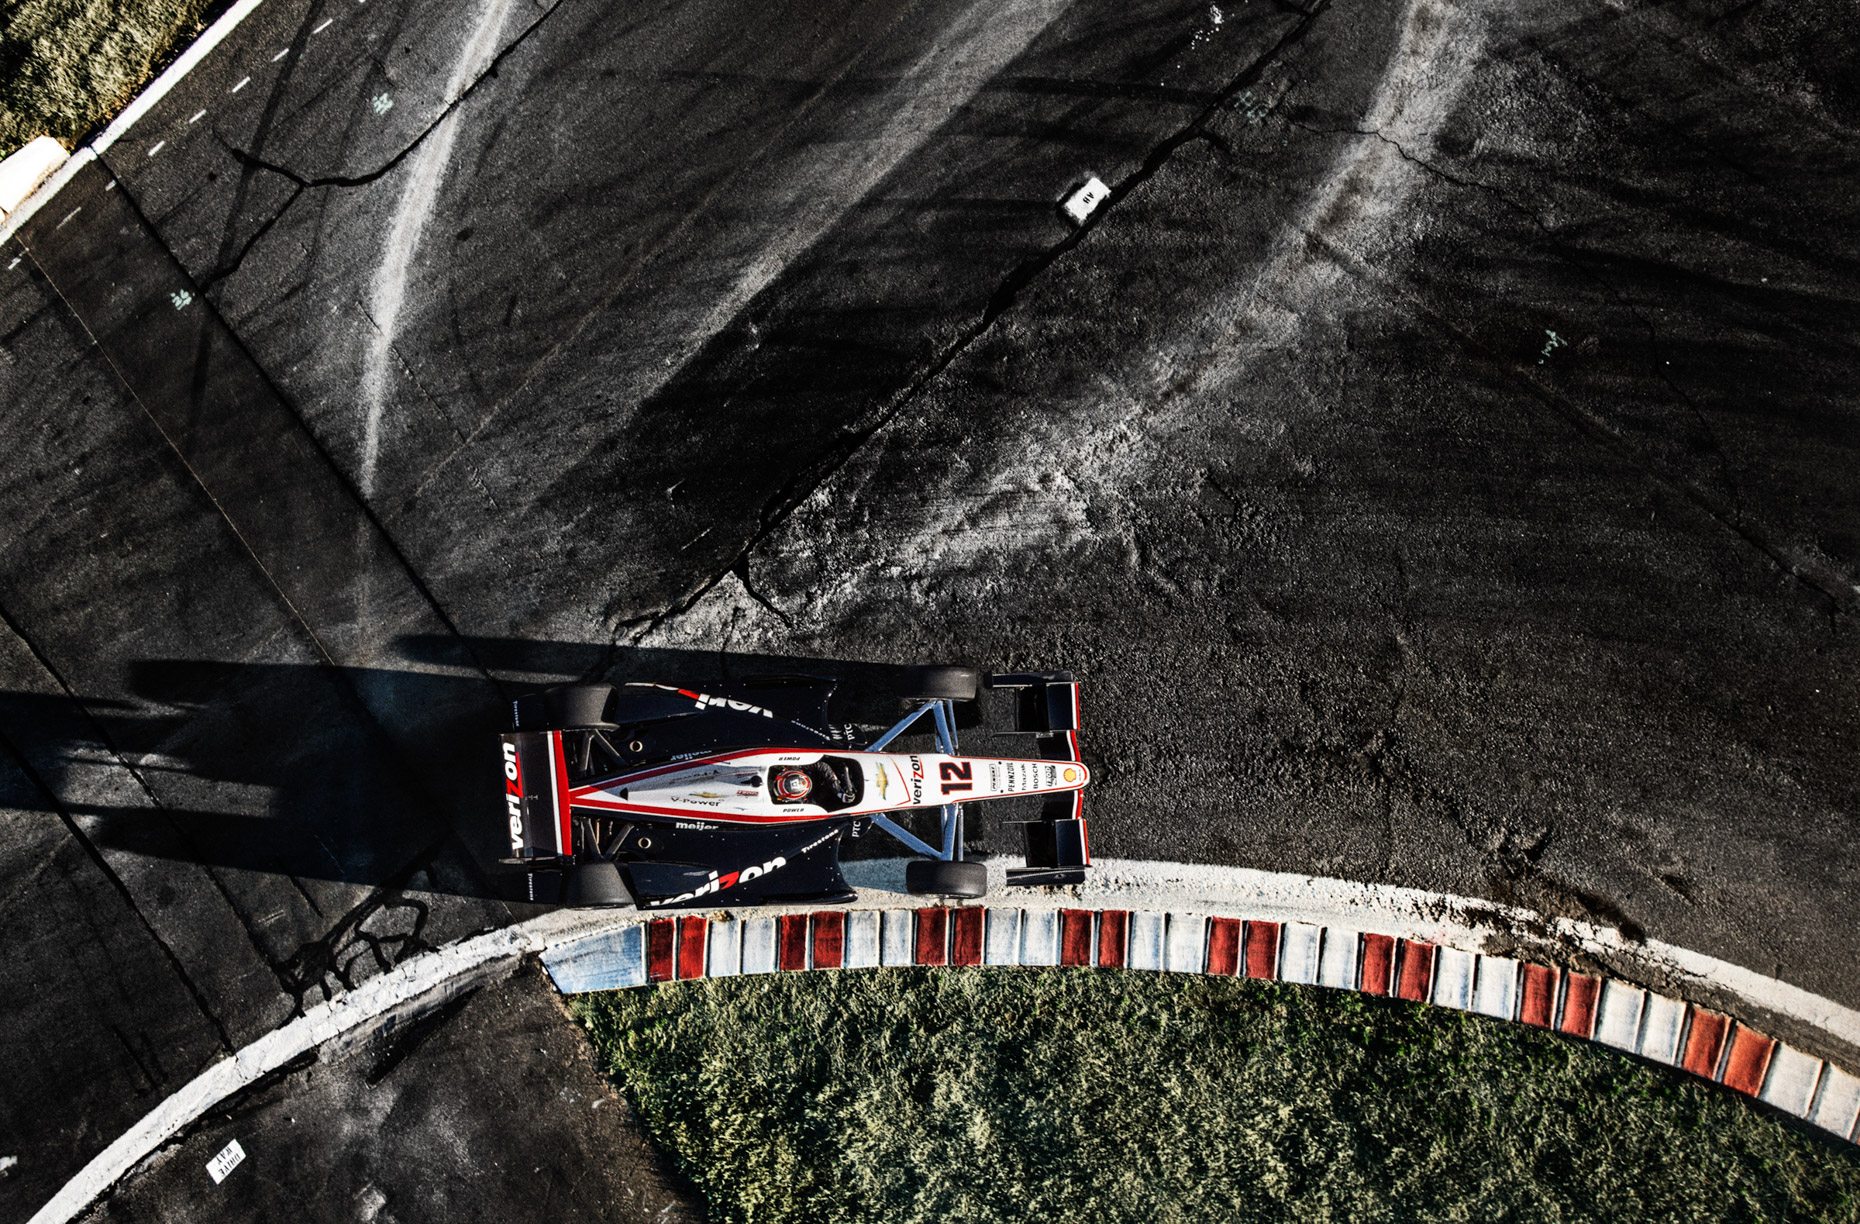 Indycar racecar driver Will Power by dramatic sport photographer Andy Batt